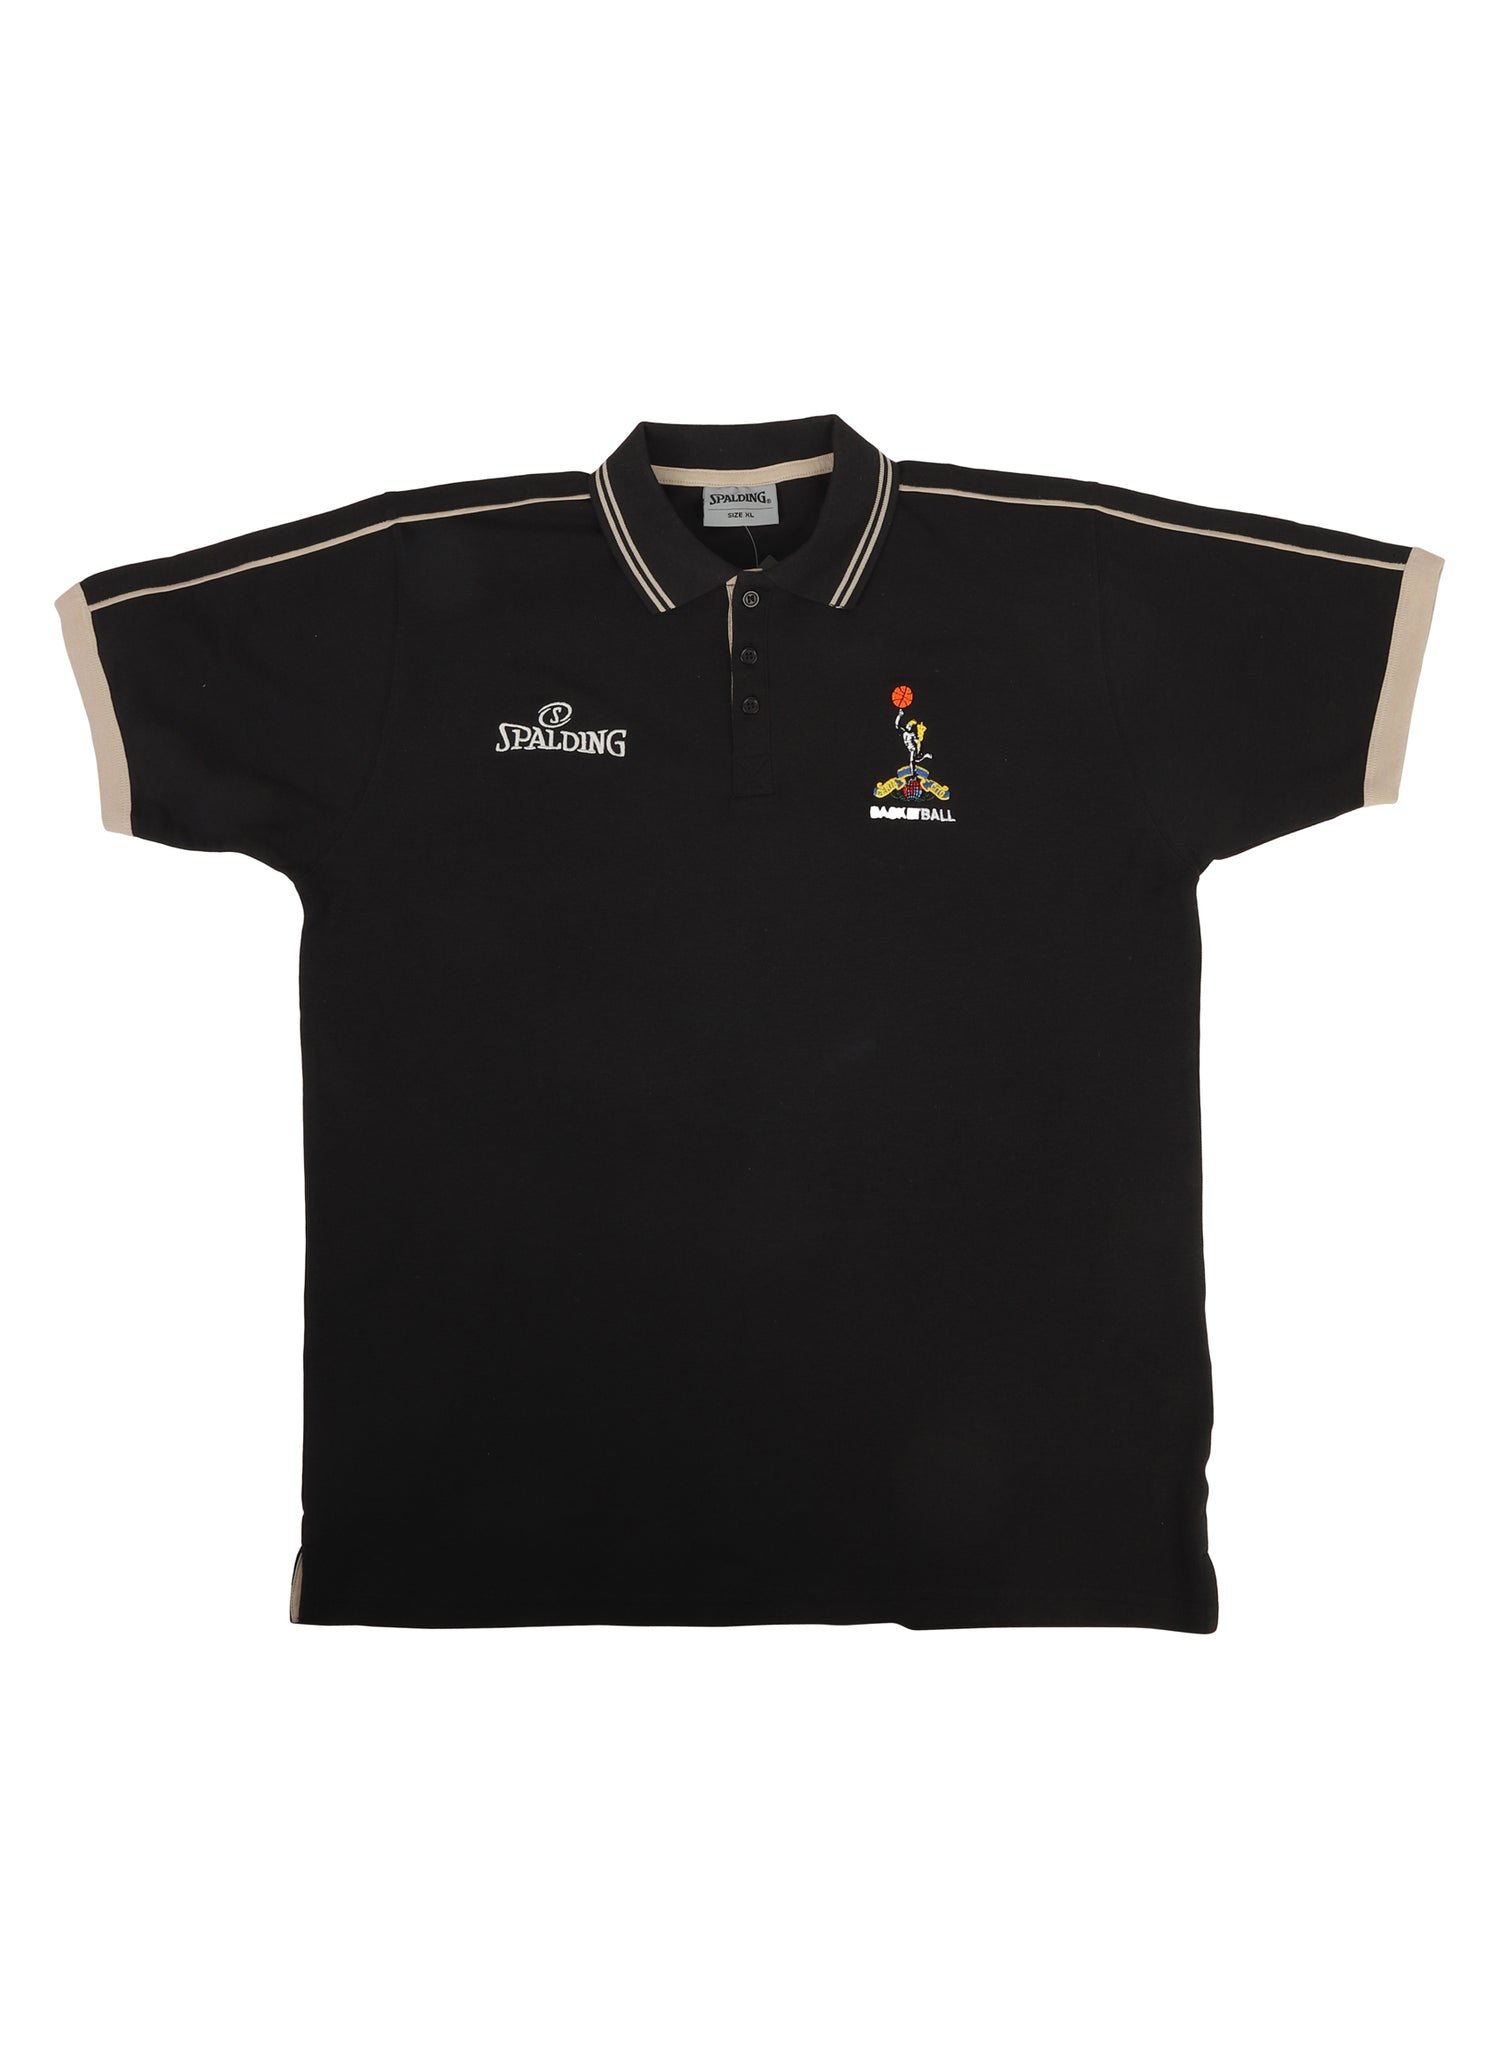 Royal Corps of Signals Polo Shirt (Copy)